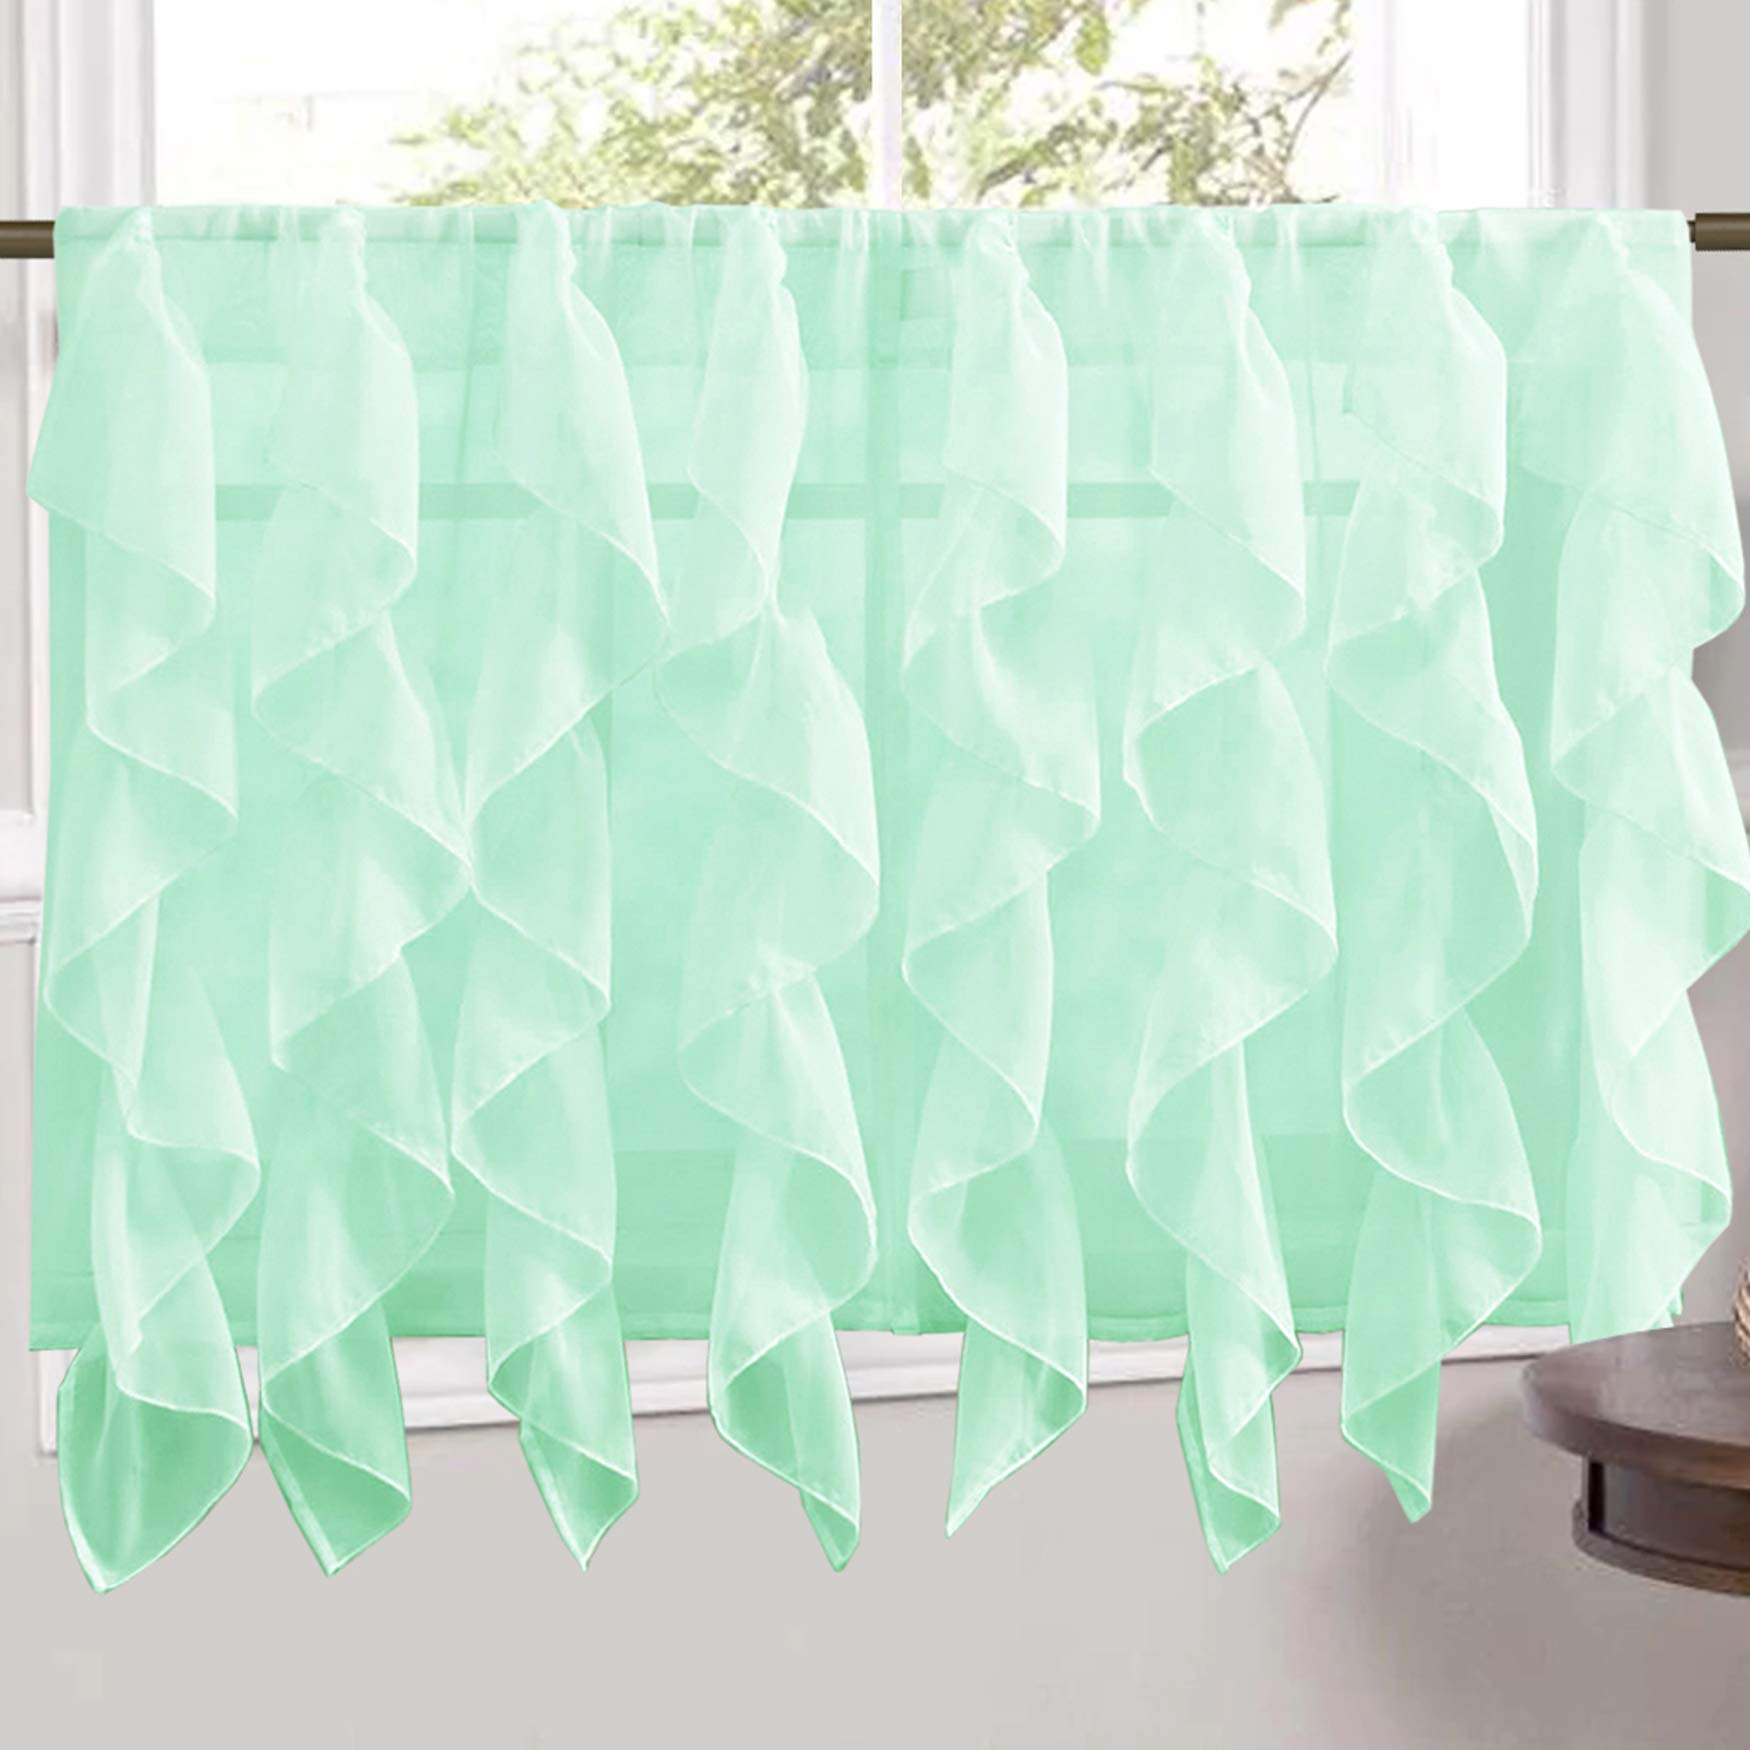 Sweet Home Collection Veritcal Kitchen Curtain Sheer Cascading Ruffle Waterfall Window Treatment - Choice of Valance, 24'' or 36'' Teir, and Kit, Tier Pair Only, Mint by Sweet Home Collection